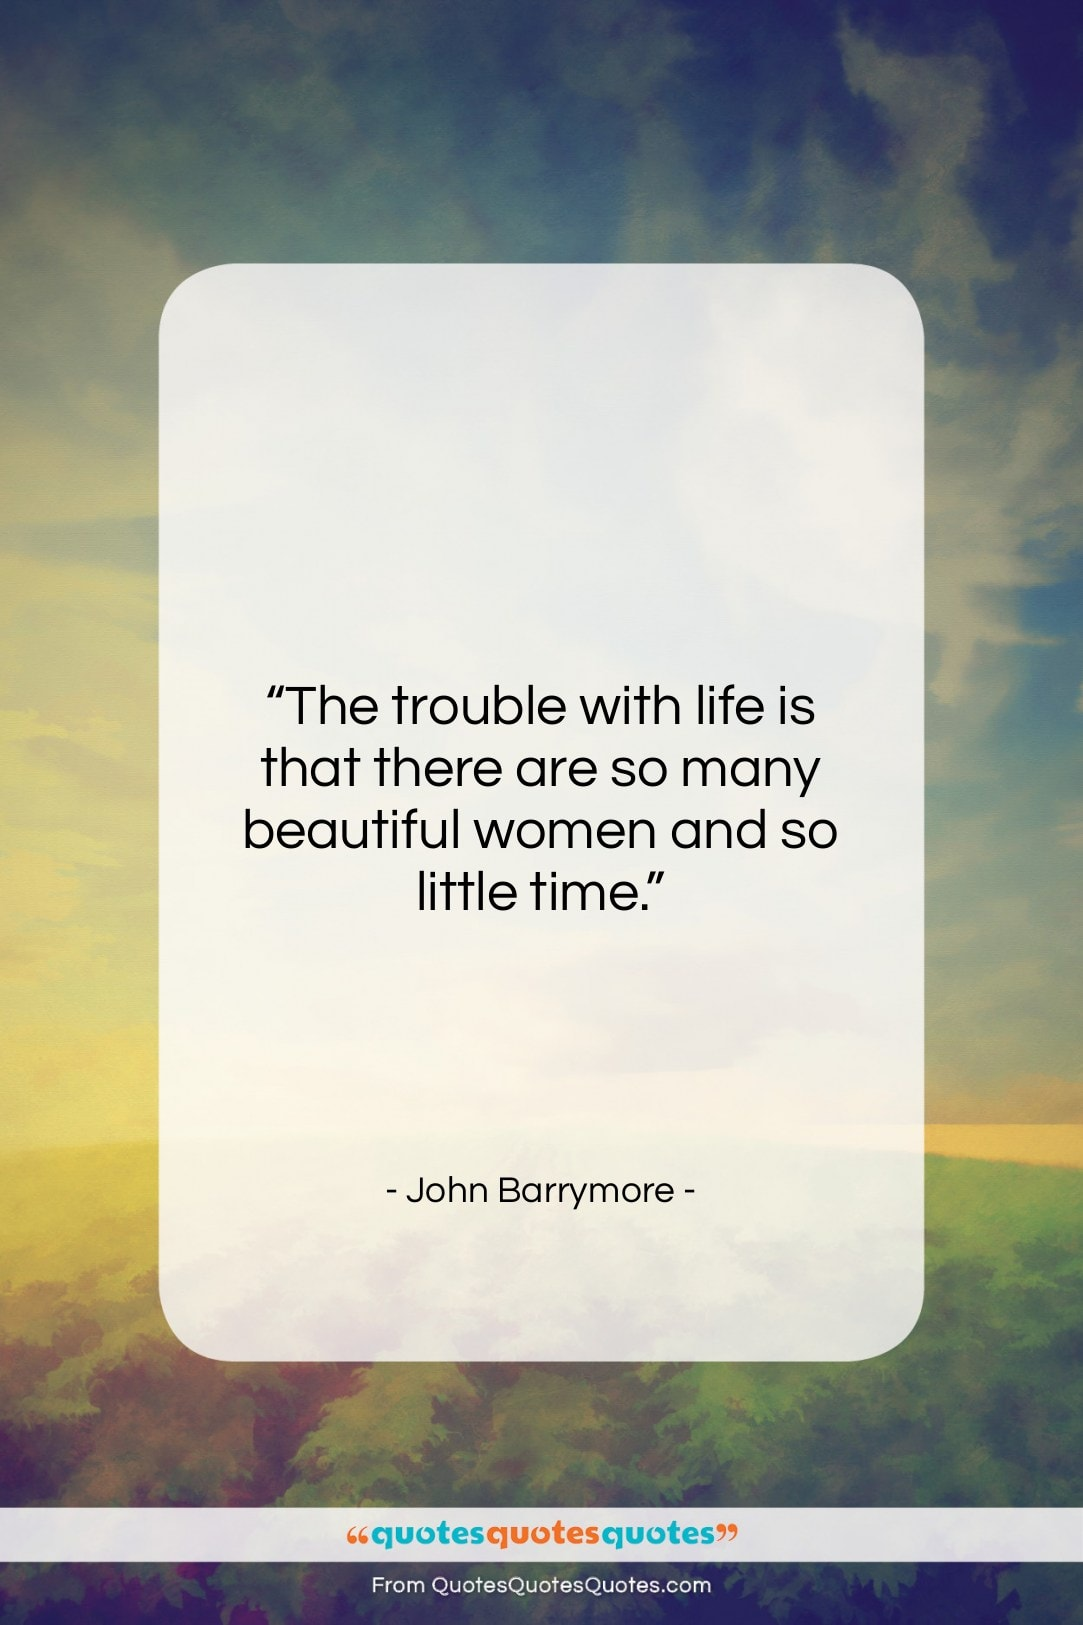 """John Barrymore quote: """"The trouble with life is that there…""""- at QuotesQuotesQuotes.com"""